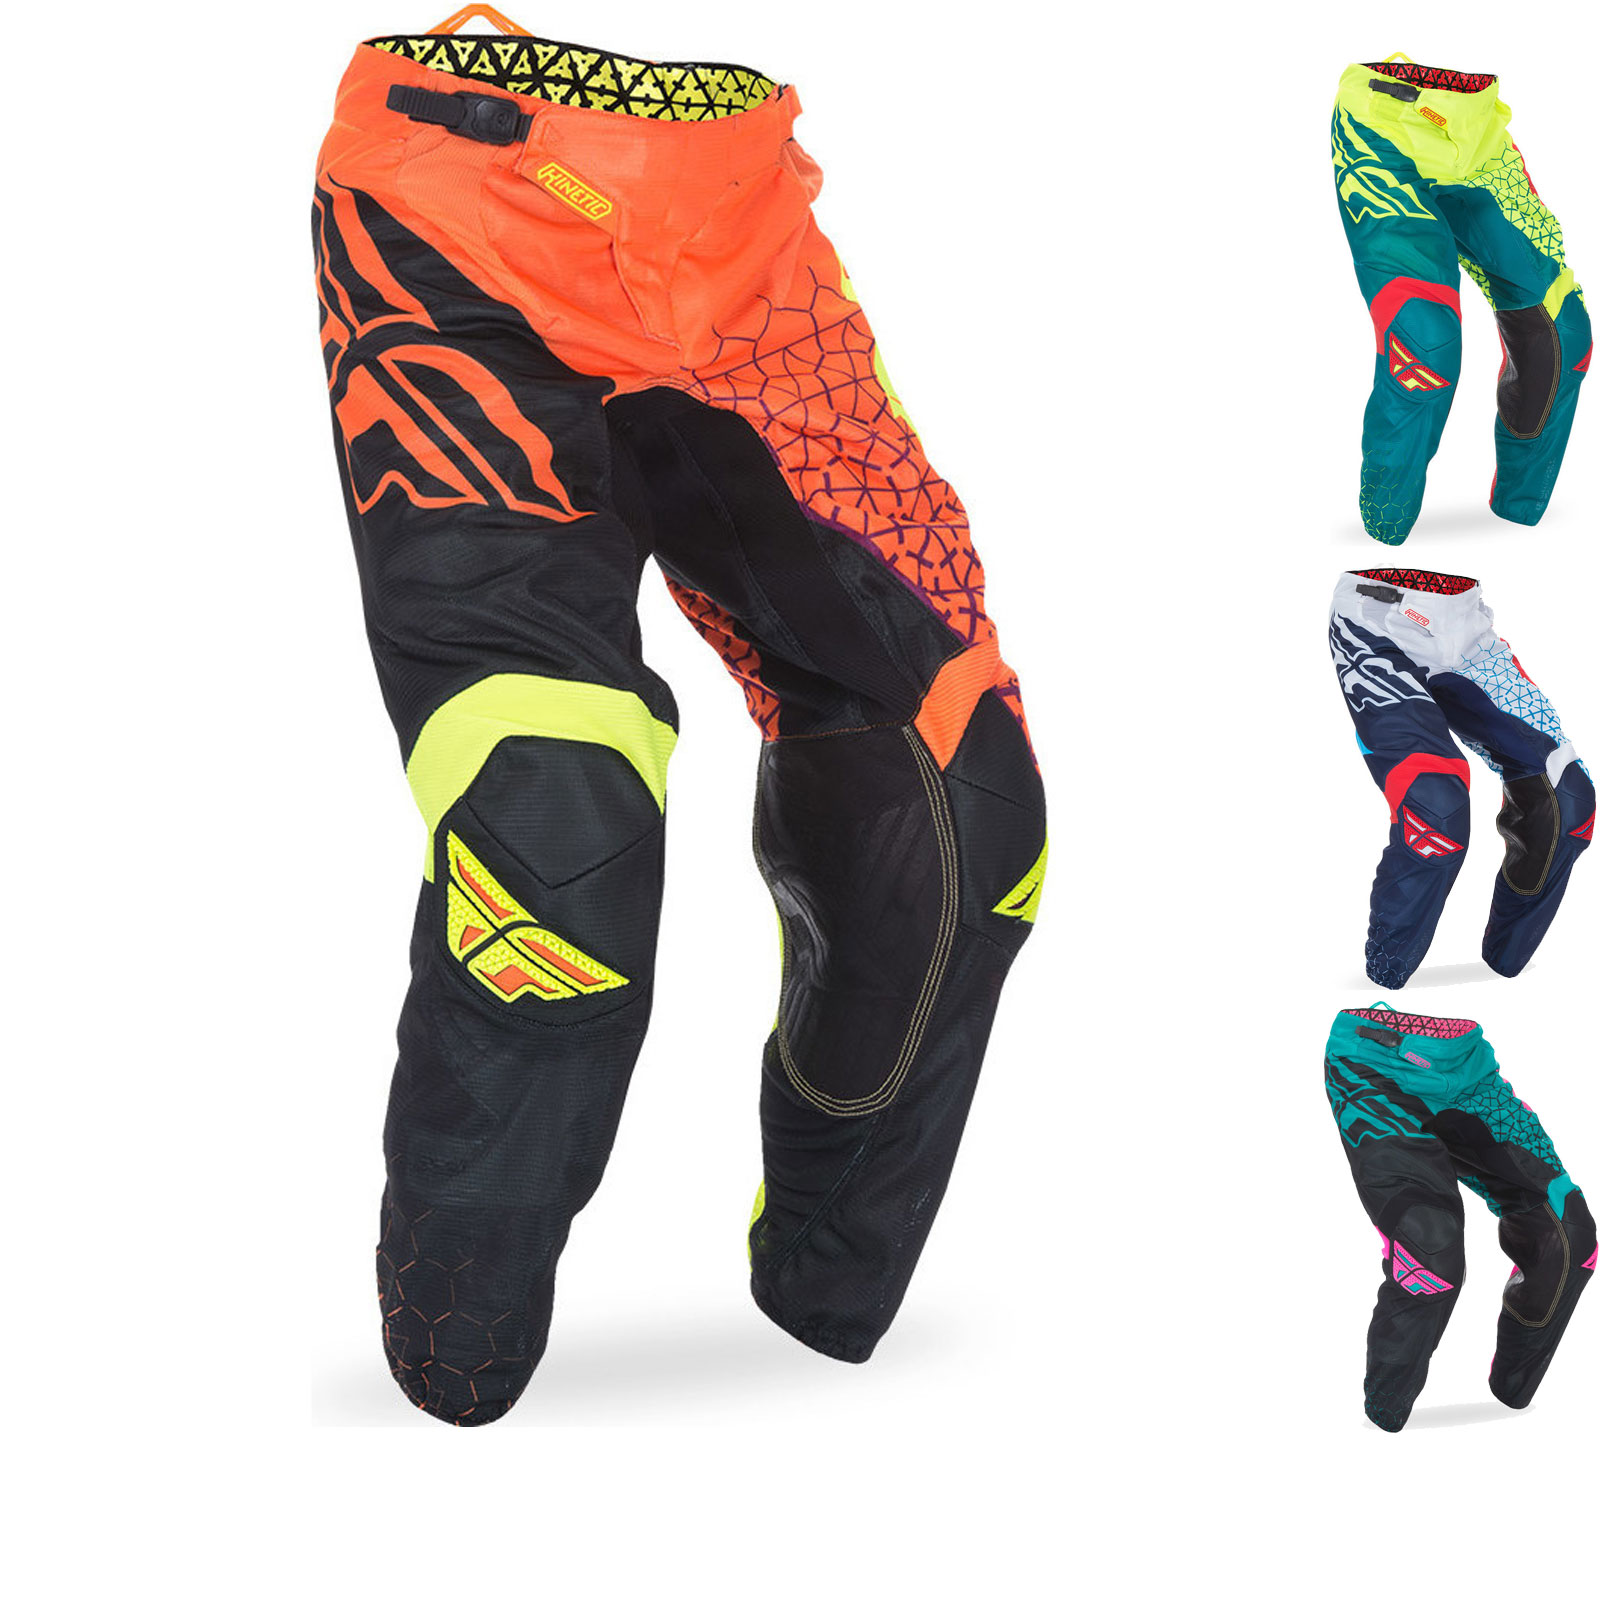 Fly Racing 2017 Kinetic Mesh Trifecta Motocross Pants Clearance Ghostbikes Com